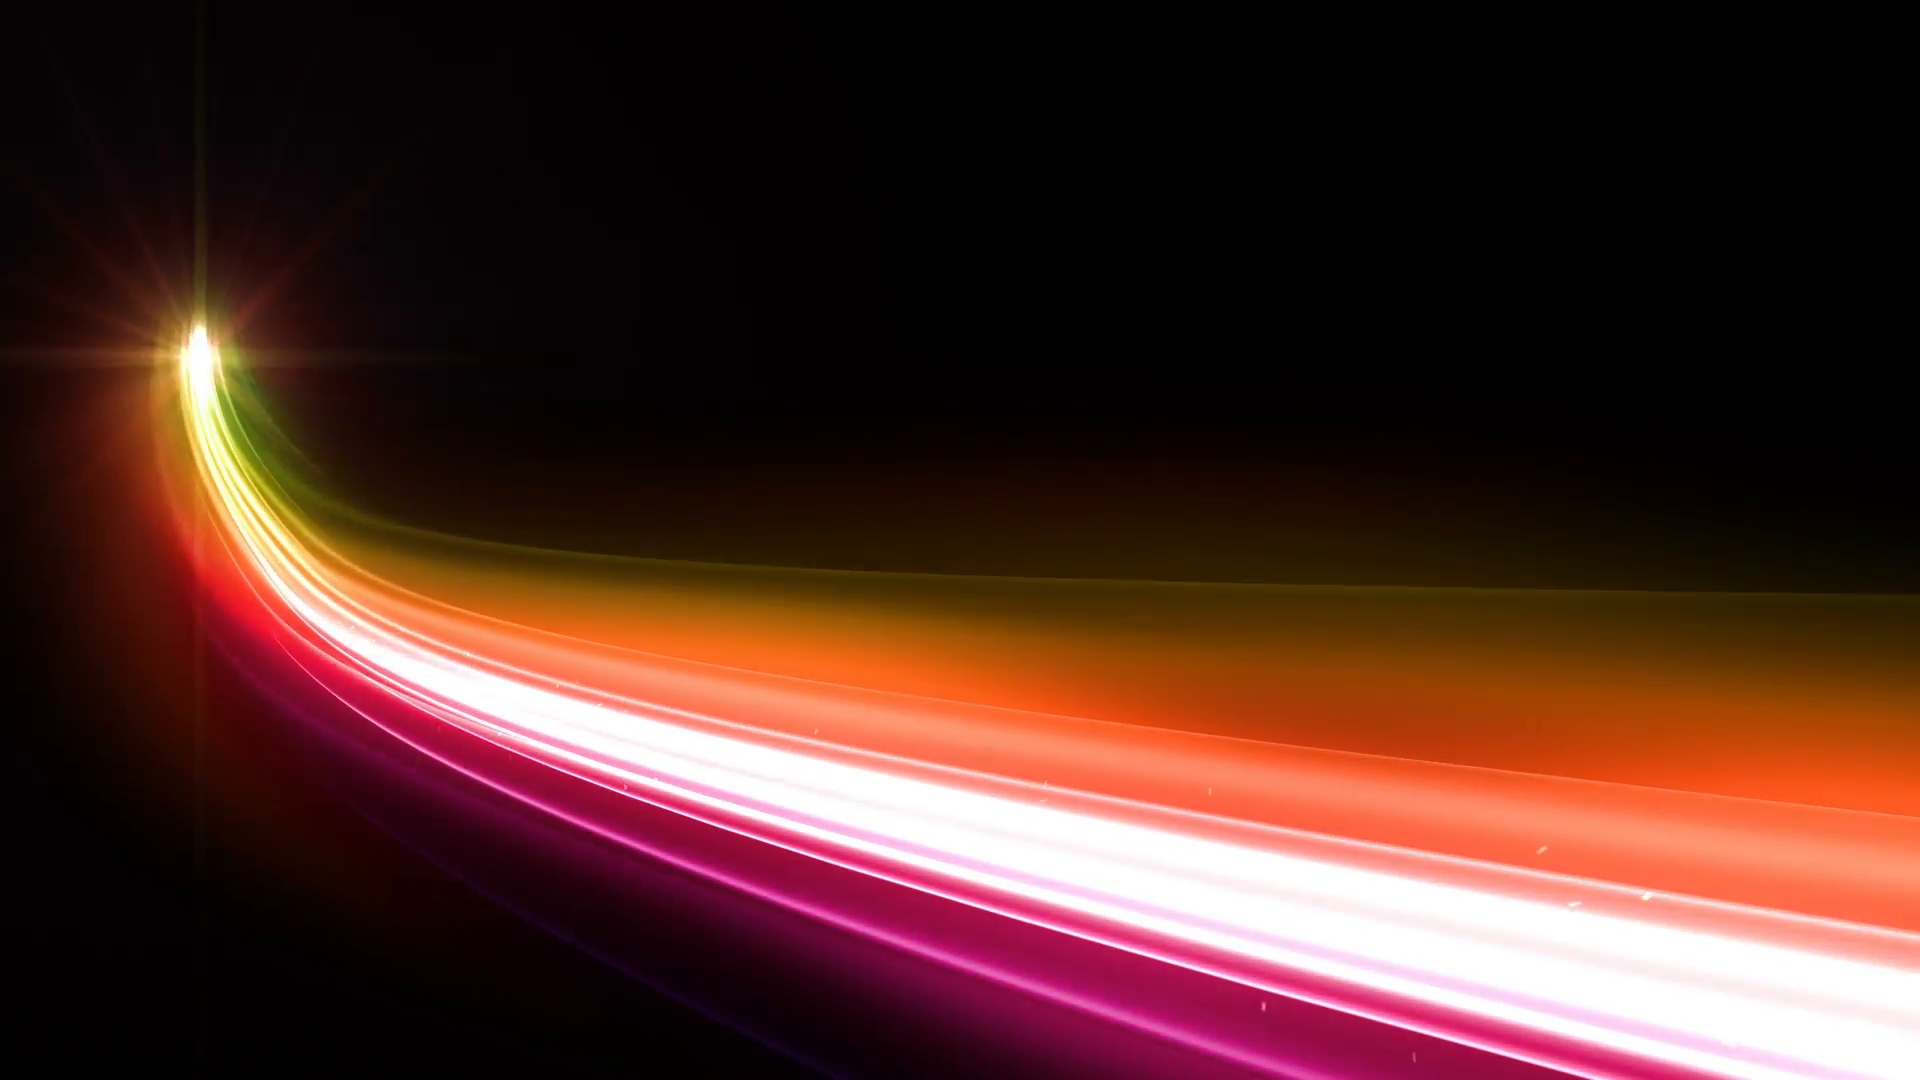 Red Light Orange Line Yellow Sky Atmosph 616735 Png Images Pngio